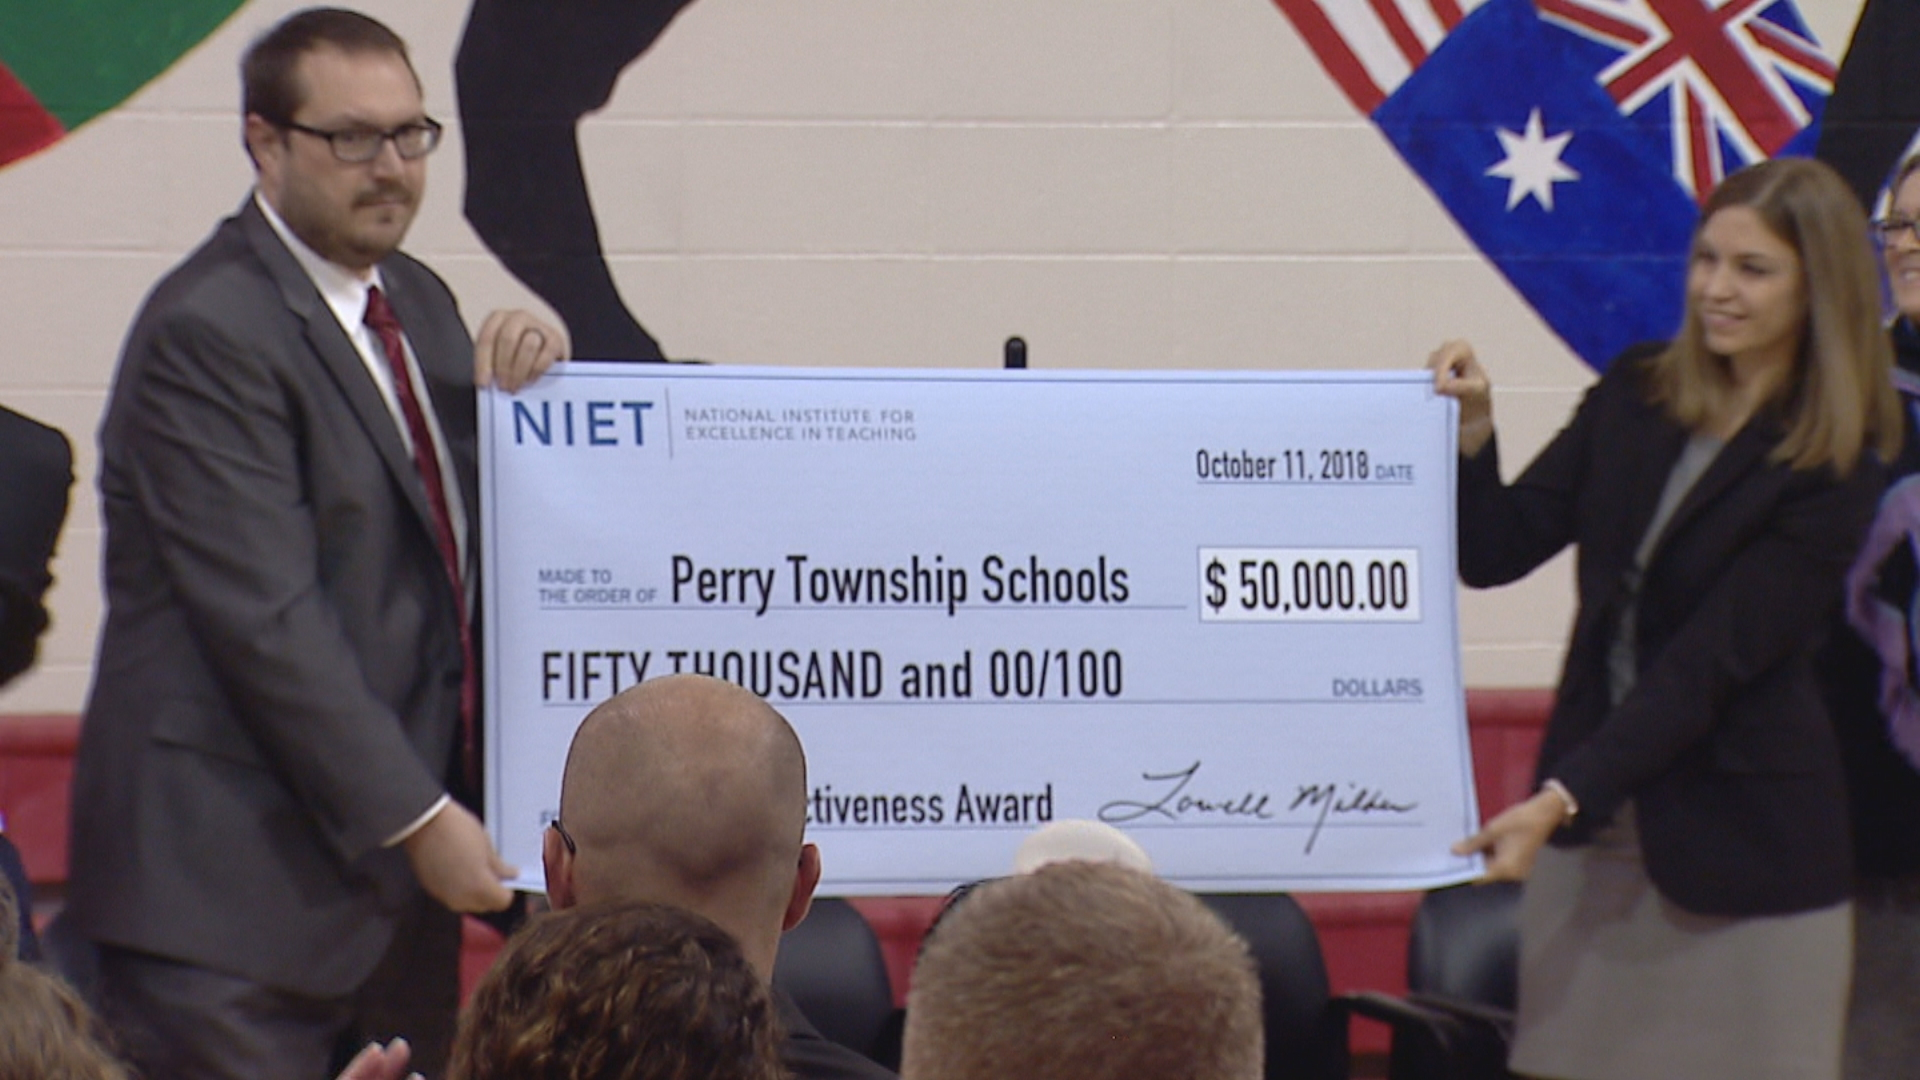 Perry Township Schools receives national award